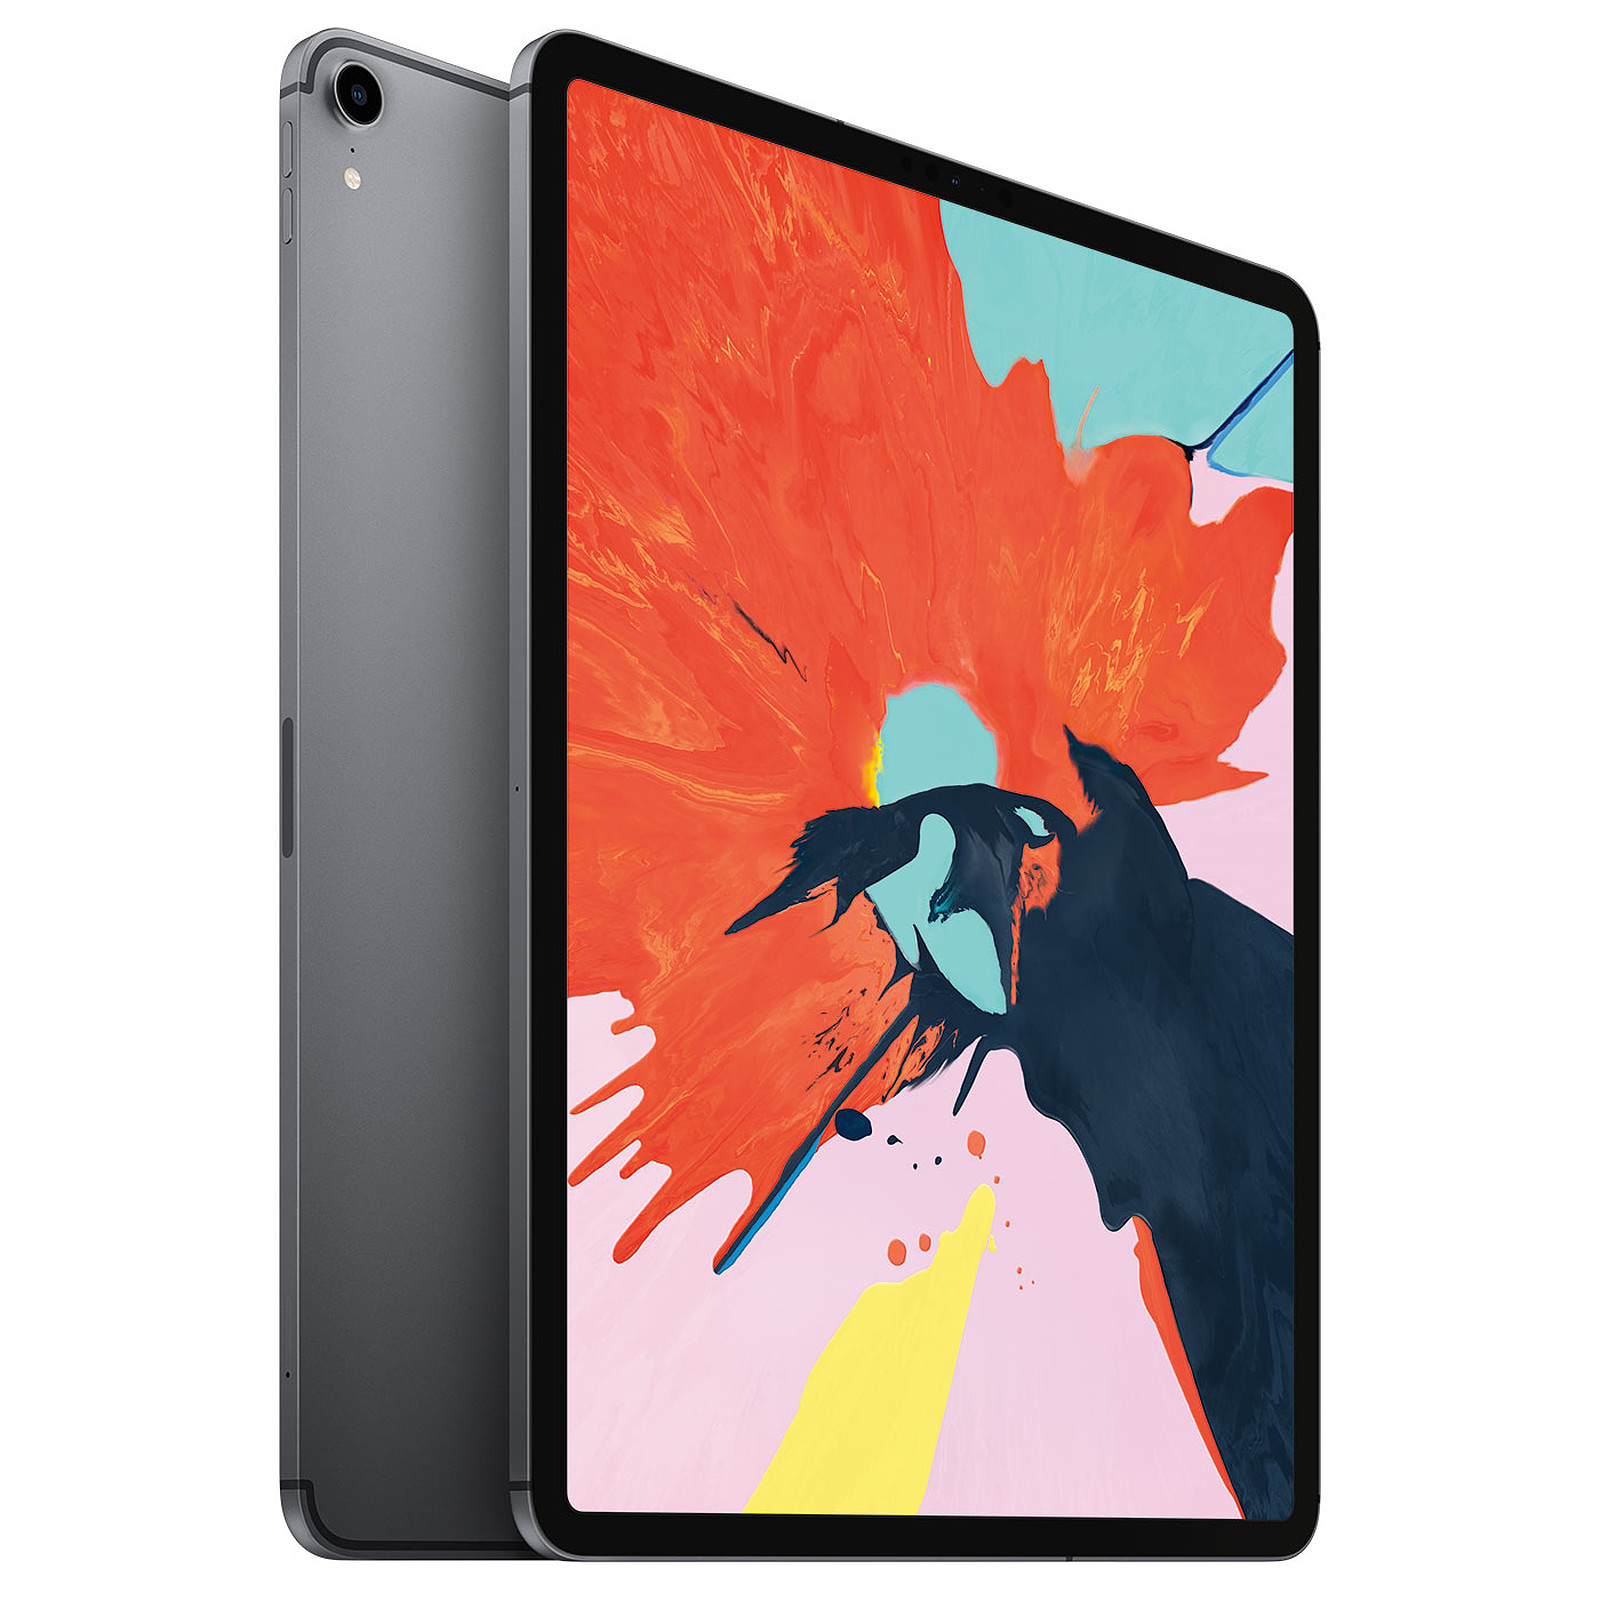 Apple iPad Pro (2018) 12.9 pouces 1 To Wi-Fi + Cellular Gris Sidéral